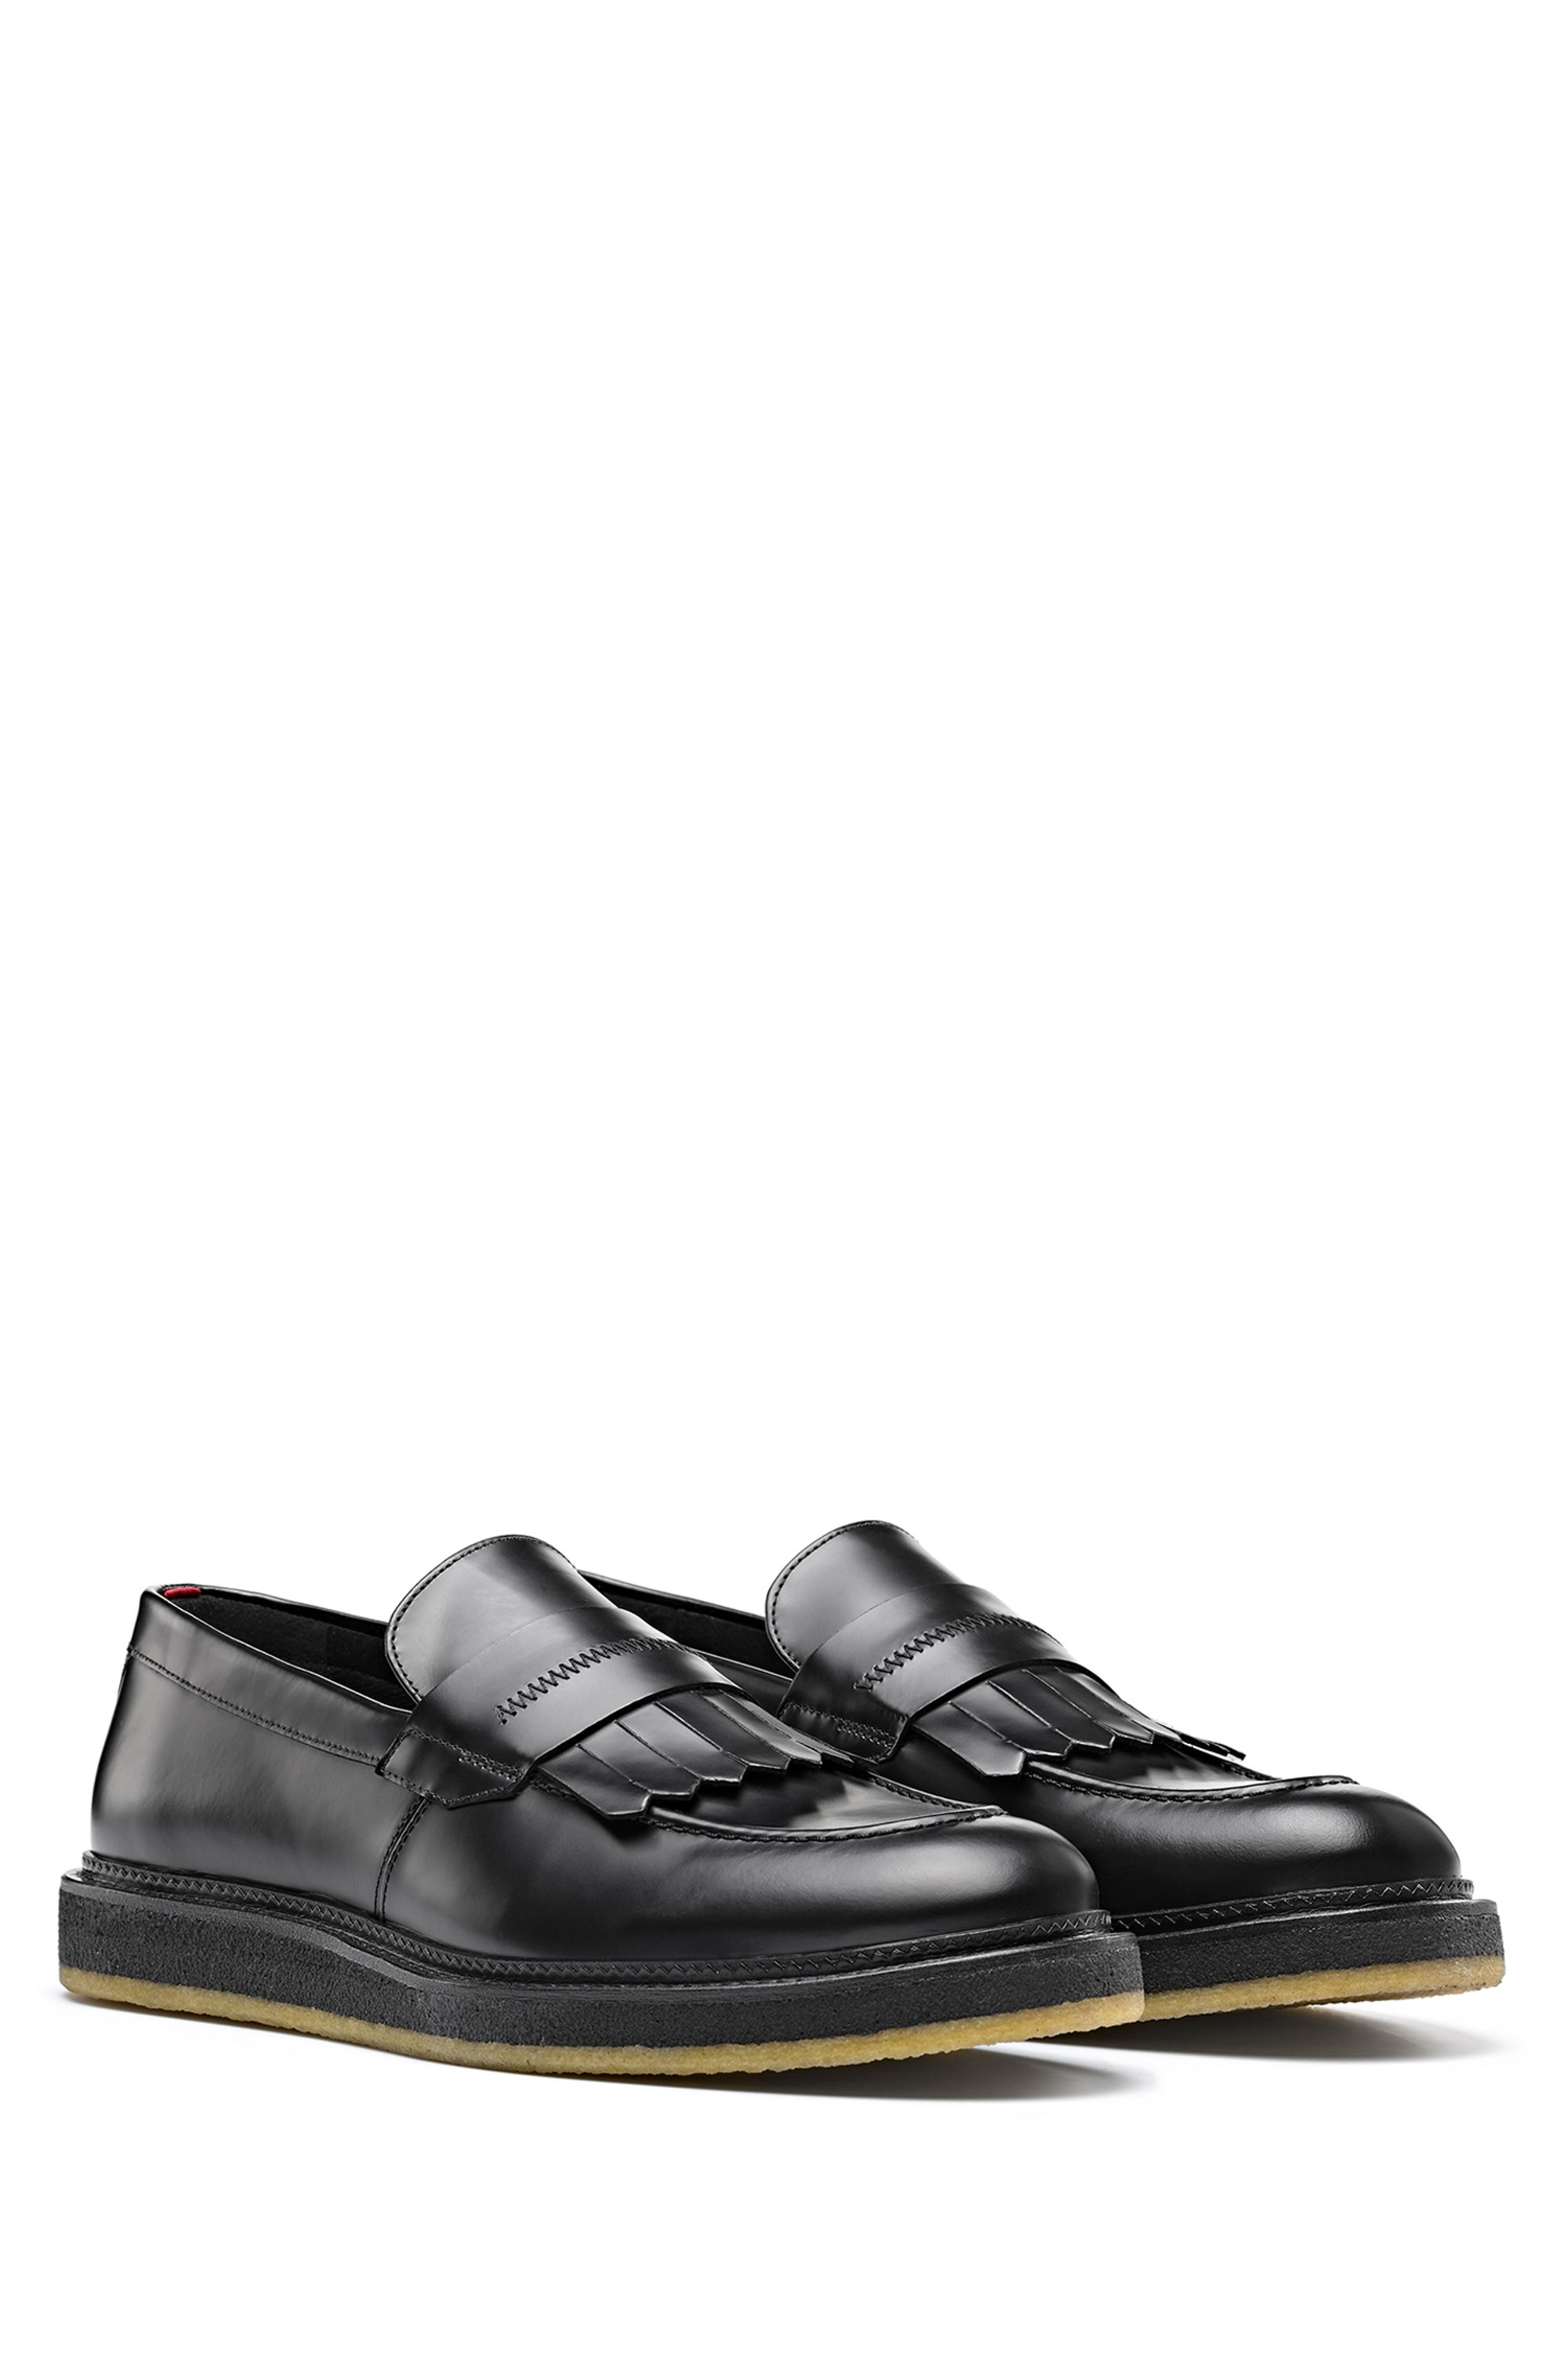 Loafers in polido leather with fringed trim